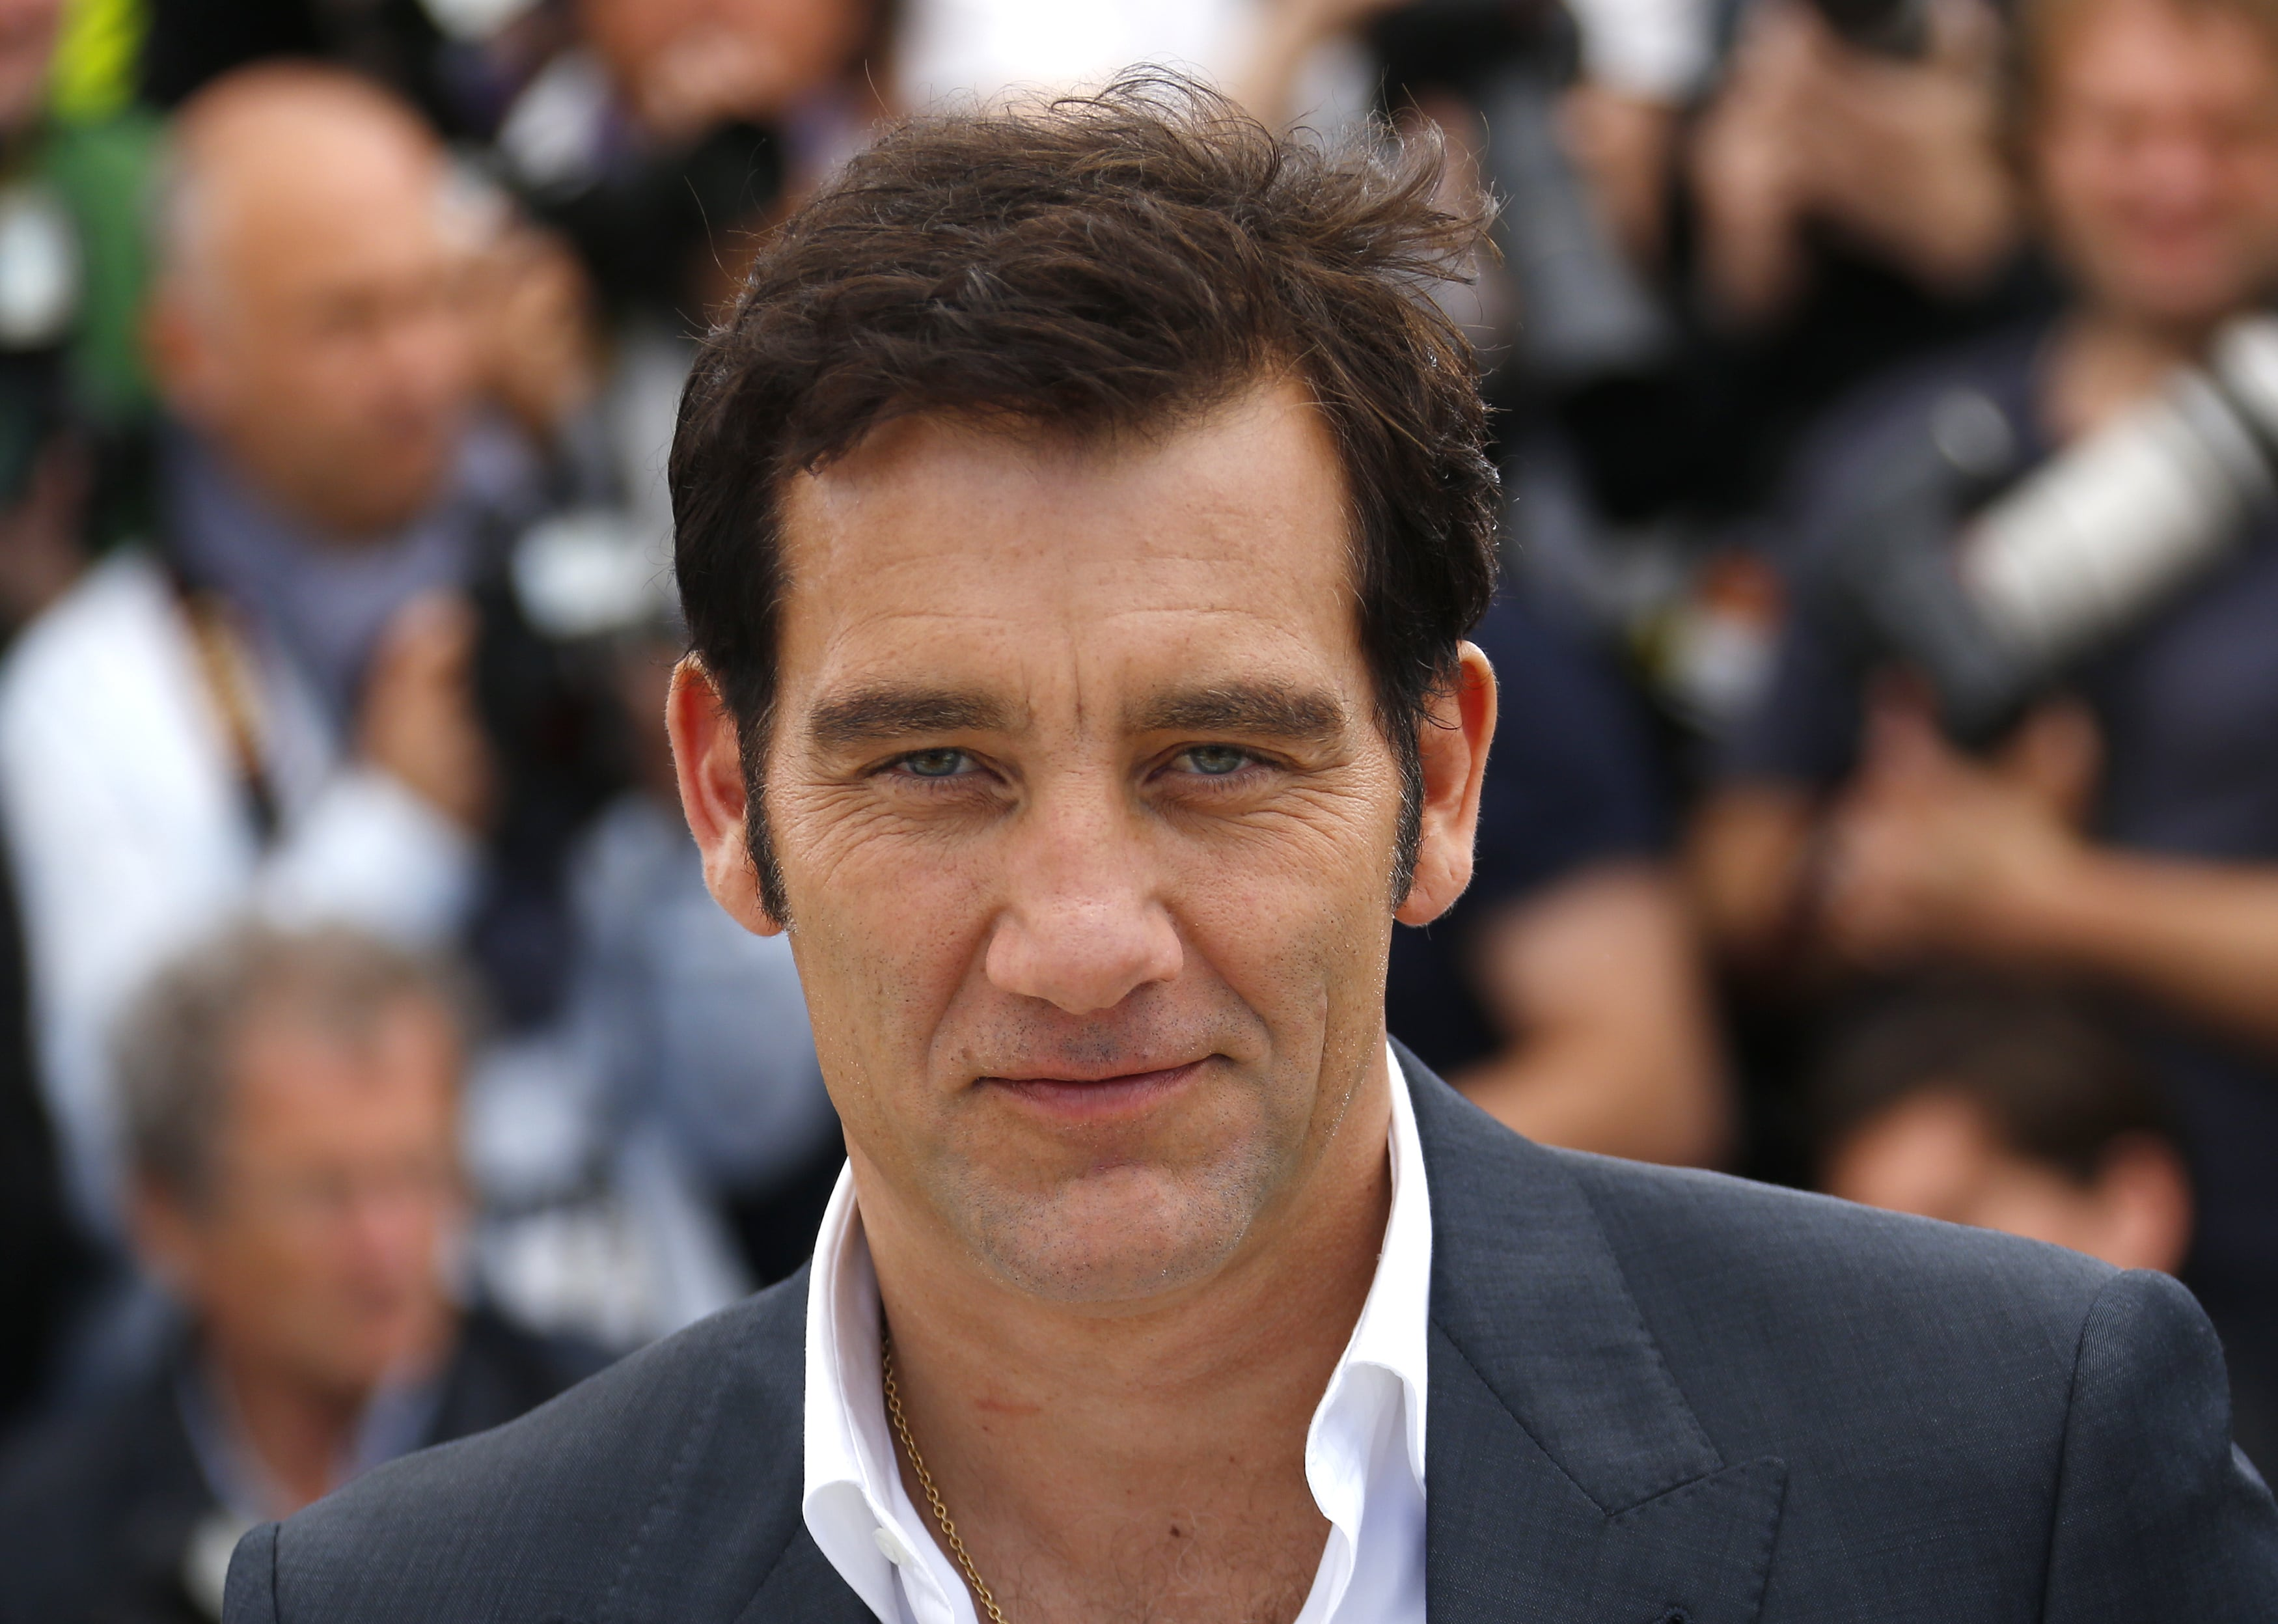 Clive Owen Full hd wallpapers